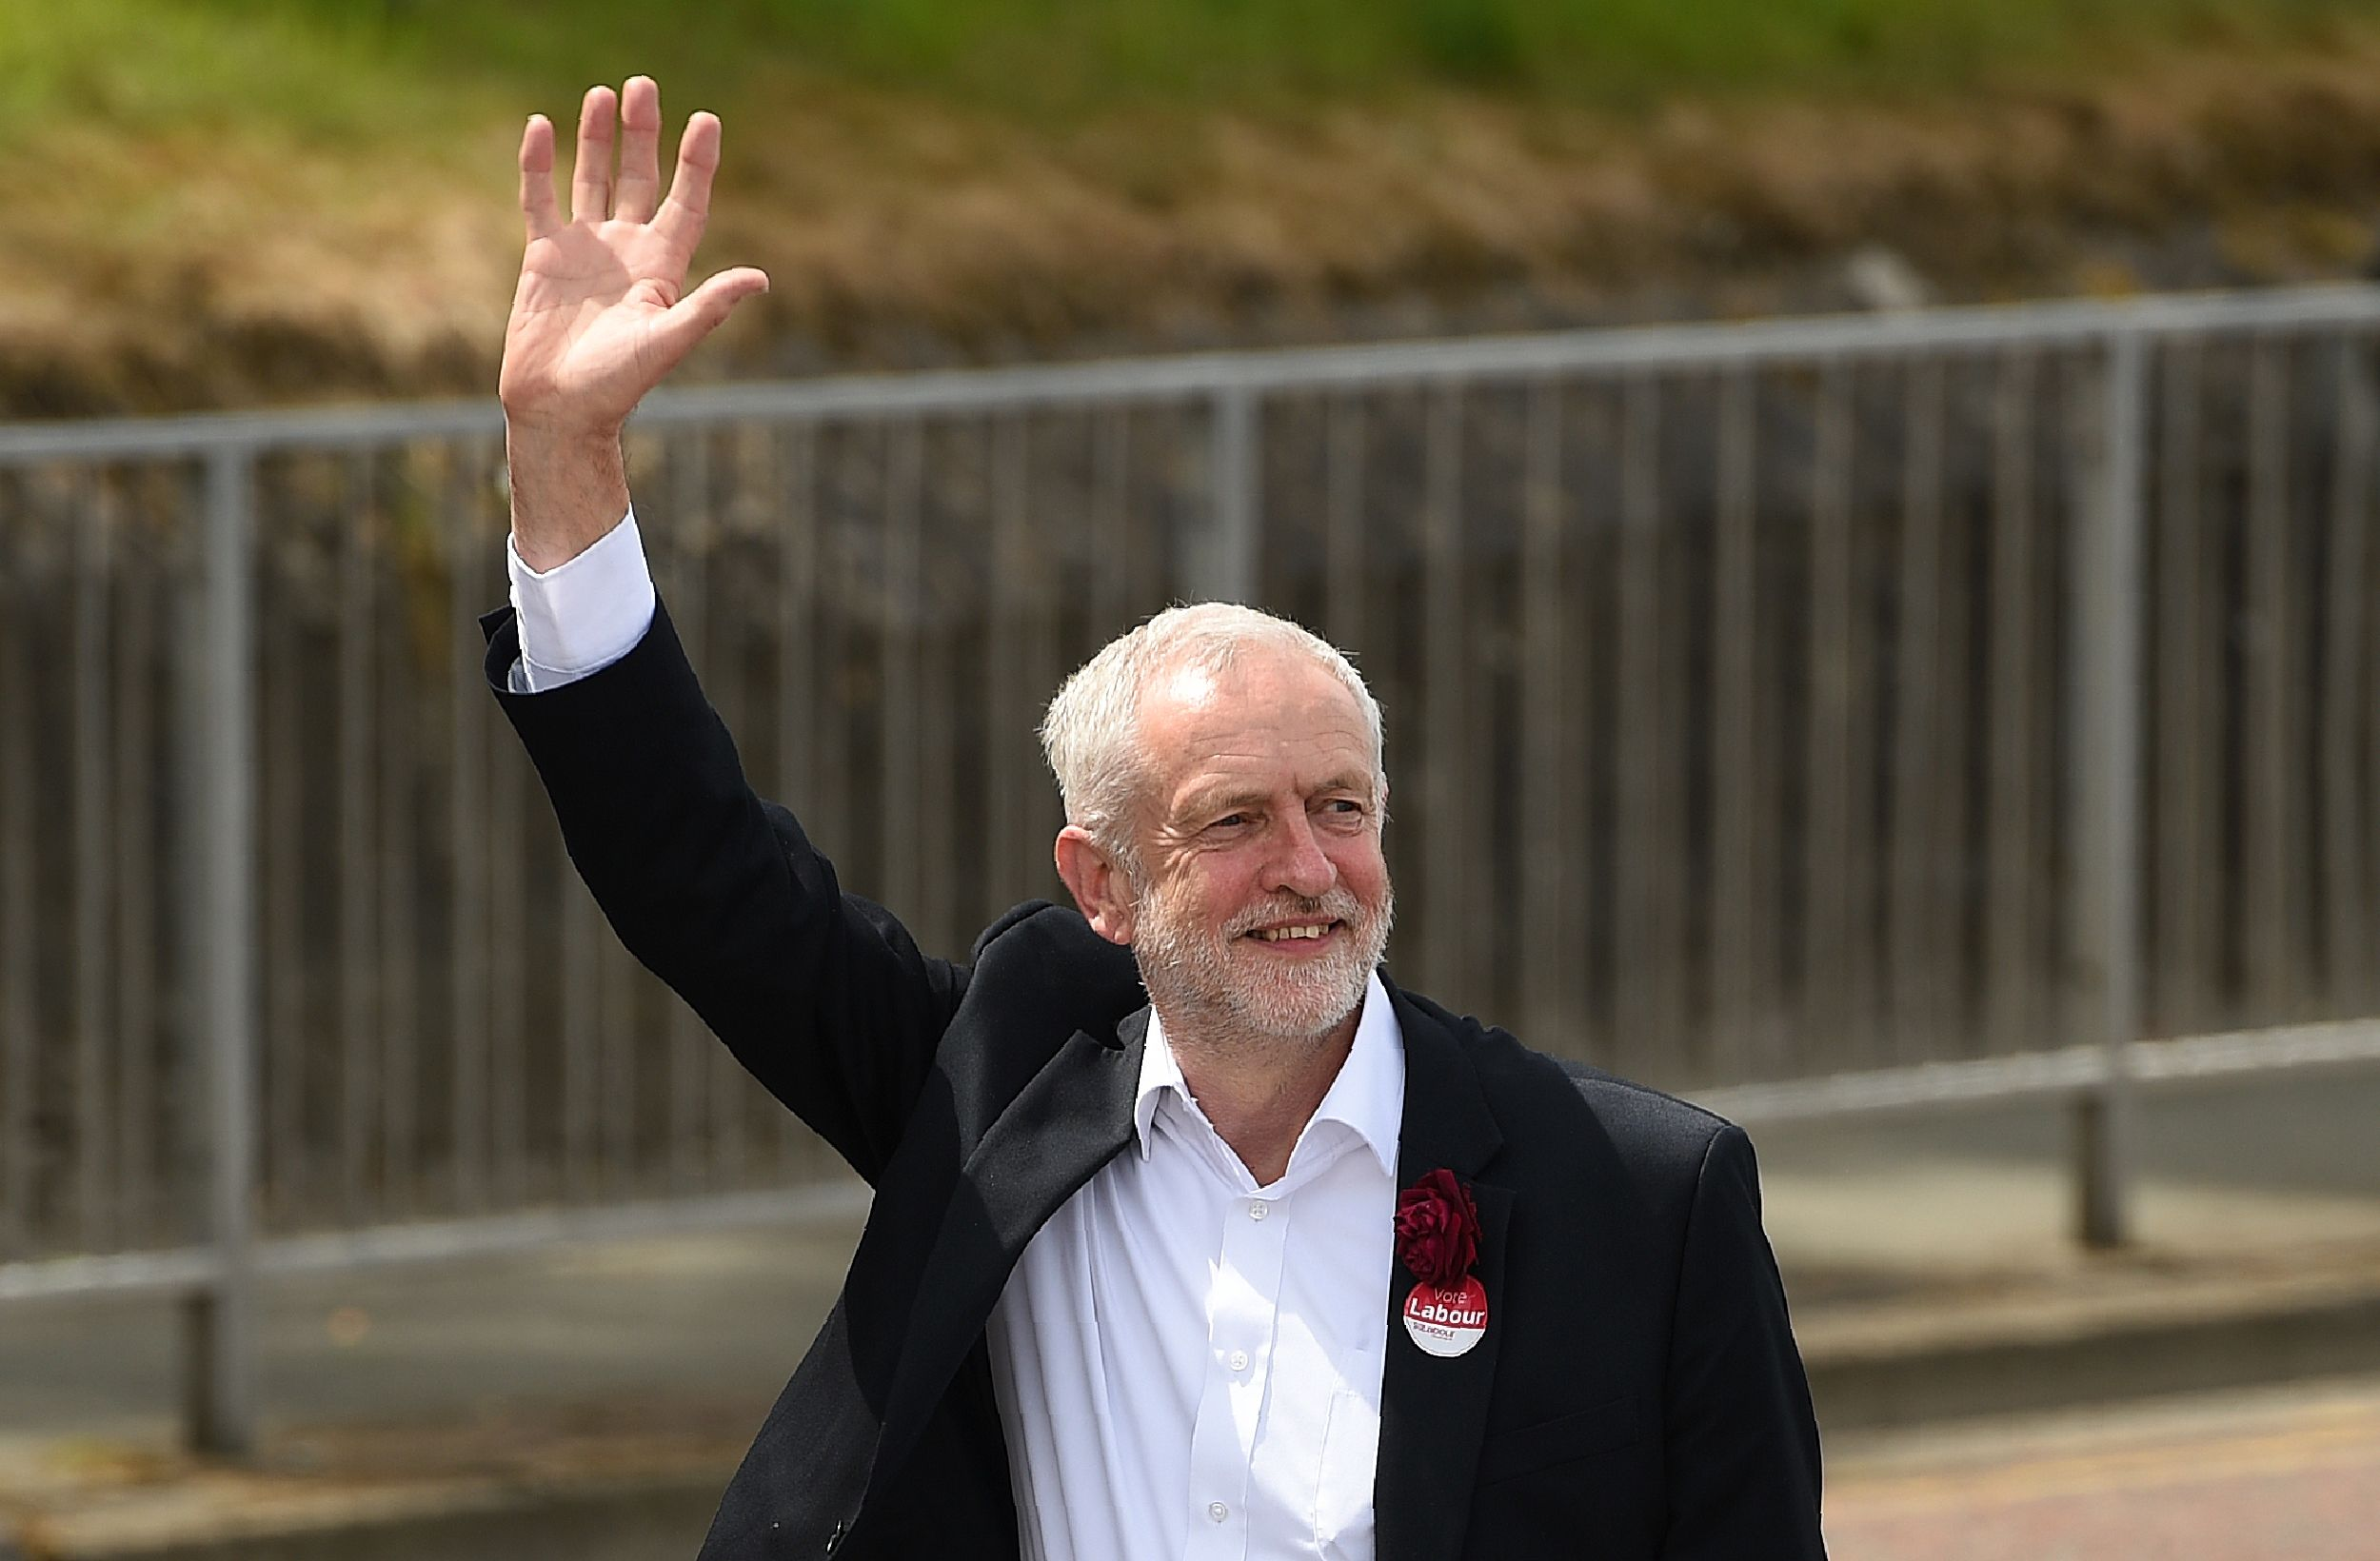 Britain's main opposition Labour Party leader Jeremy Corbyn waves as he arrives to address supporters at a campaign visit in Colwyn Bay, north Wales on June 7, 2017, on the eve of the general election.